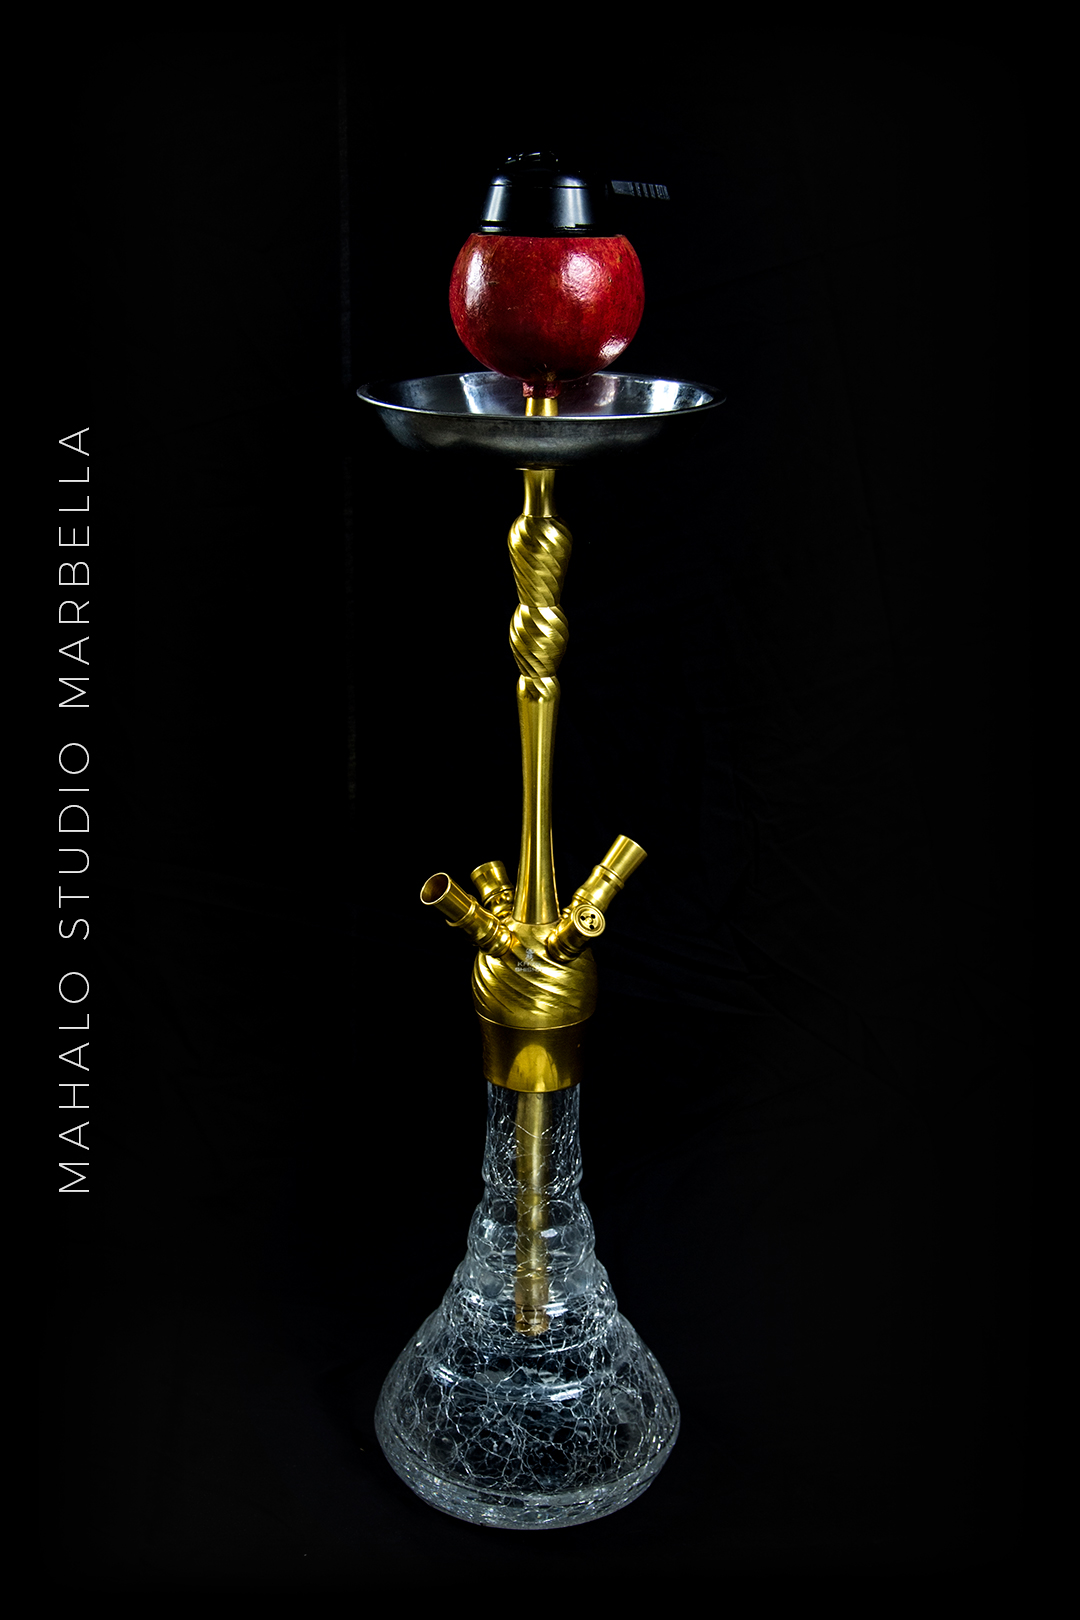 Pomegranate Hookah Fruit Bowl Dark Black Background